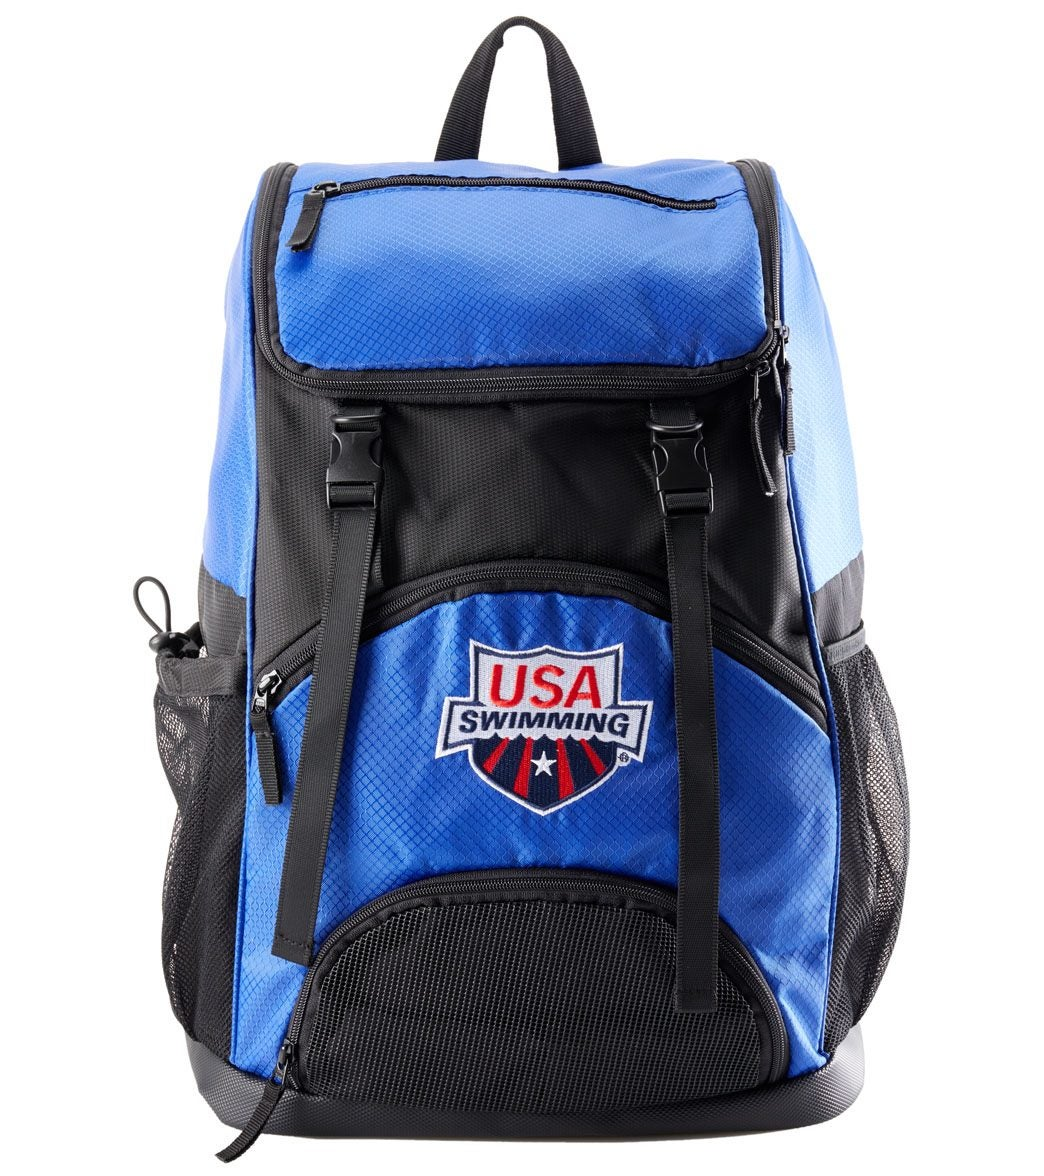 Pack up your competition essentials with the USA Swimming Large Athletic Backpack. Covered with handy compartments like large mesh side pockets and a removable inner dirt back, this backpack has padded straps and a durable waterproof base, making it perfect for the traveling swimmer.|https://www.swimoutlet.com/p/usa-swimming-large-athletic-backpack-8155972/?color=10904|39.95|cal1